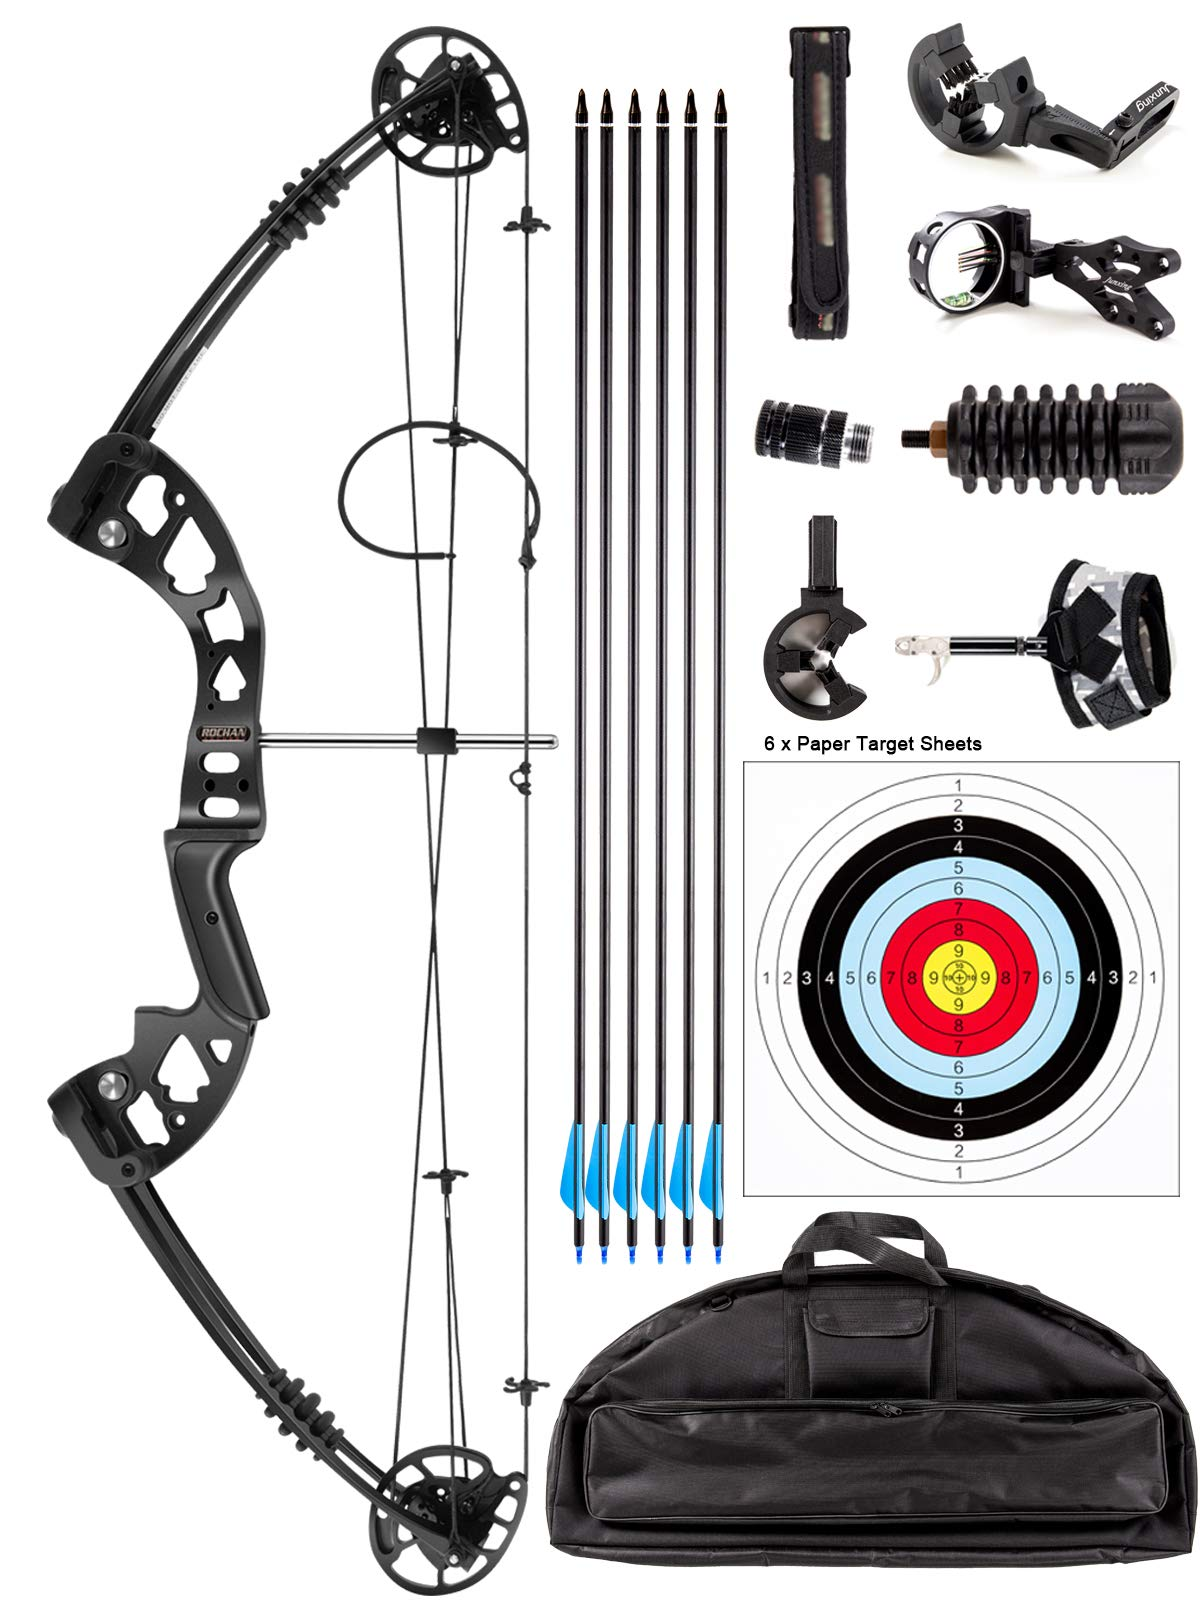 ROCHAN Aluminum Alloy Compound Bow with Dyneema Bow String Right Hand Composite Bow with Adjustable Draw Length and Weight Compound Hunting Bow Kit, IBO 310FPS by ROCHAN